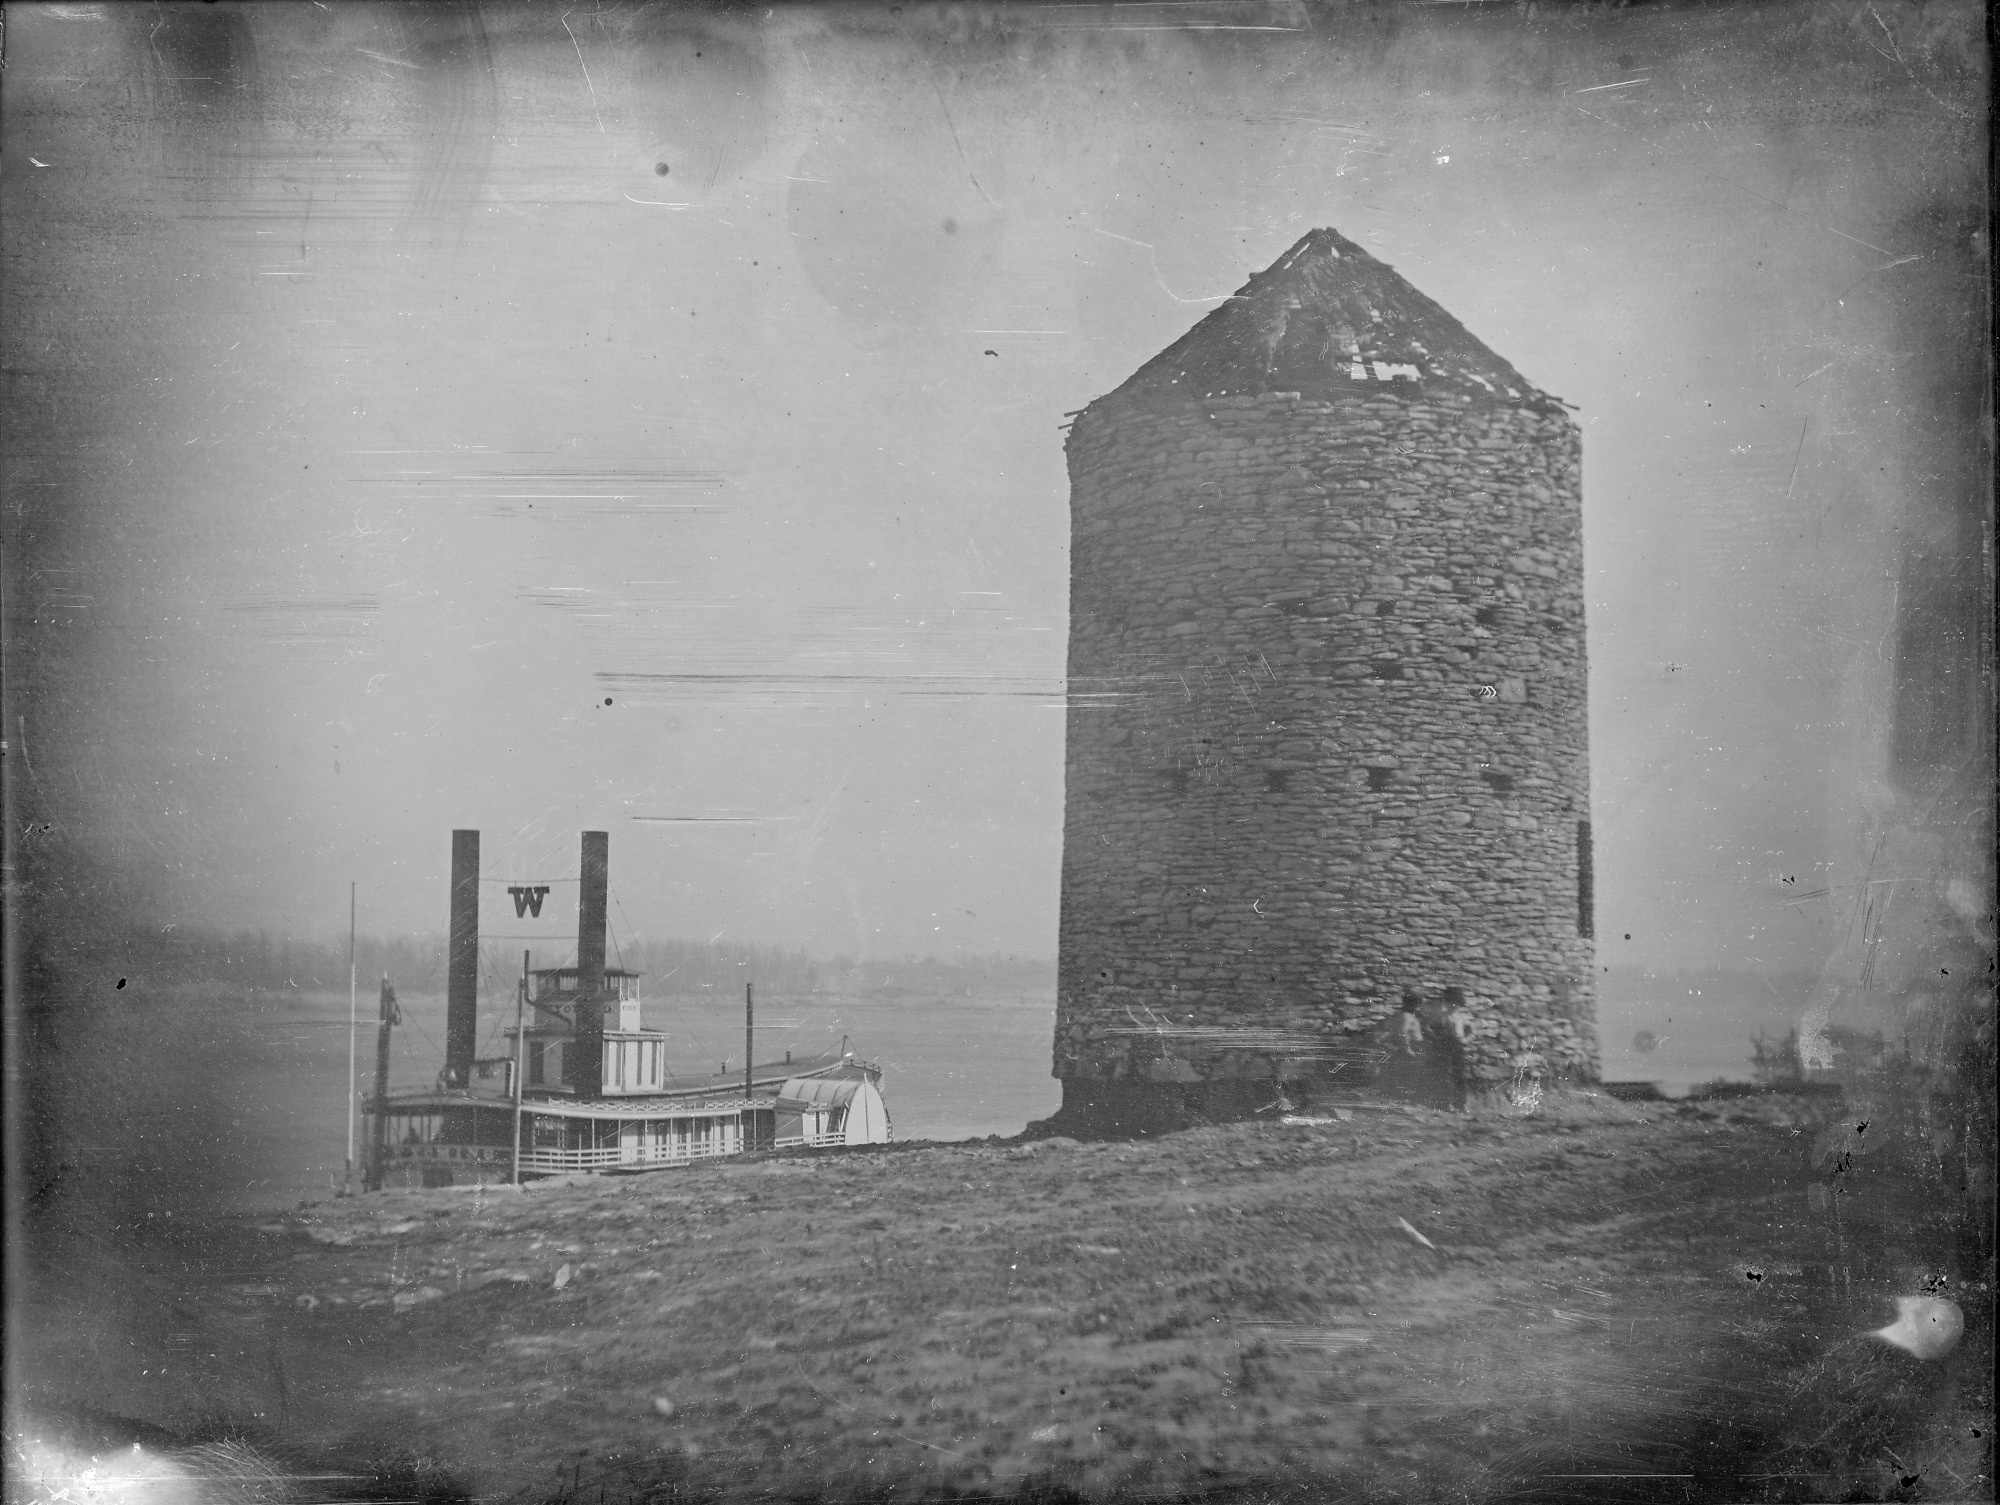 Old Spanish Fort Later Roy S Mill Riverfront At Foot Of Biddle Street Steamer Wyoming At River Bank